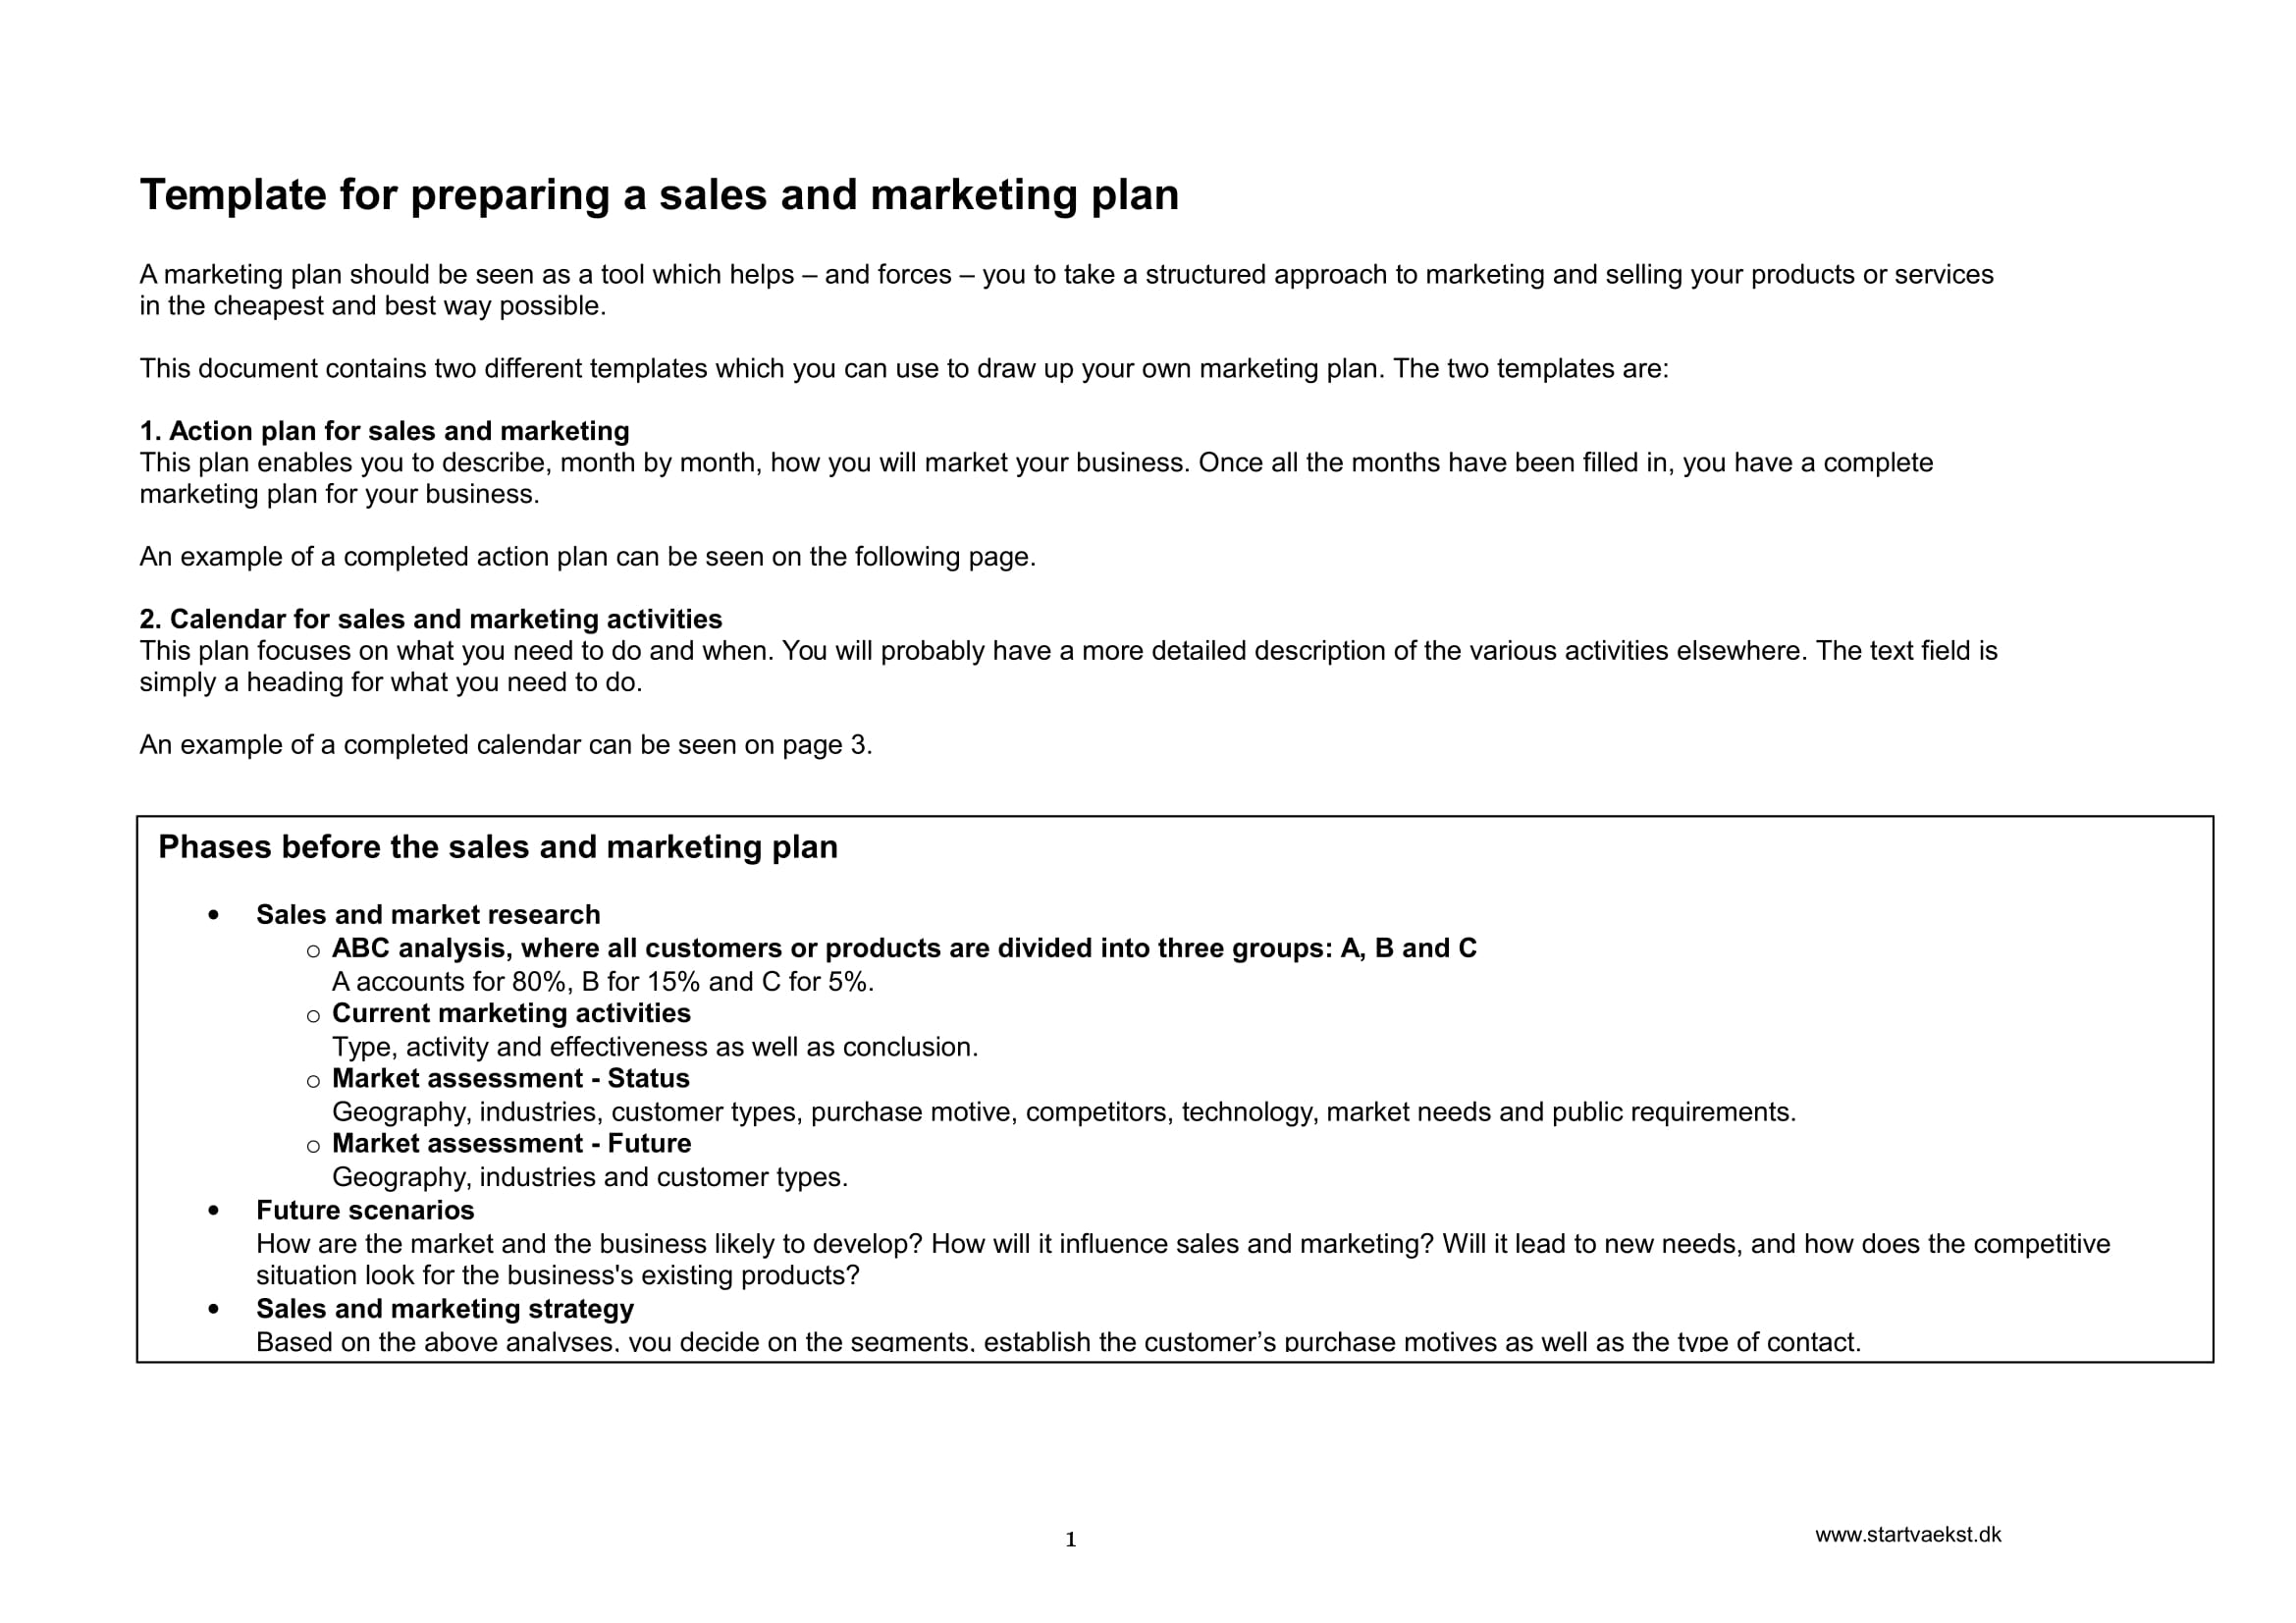 sales and marketing action plan example 1